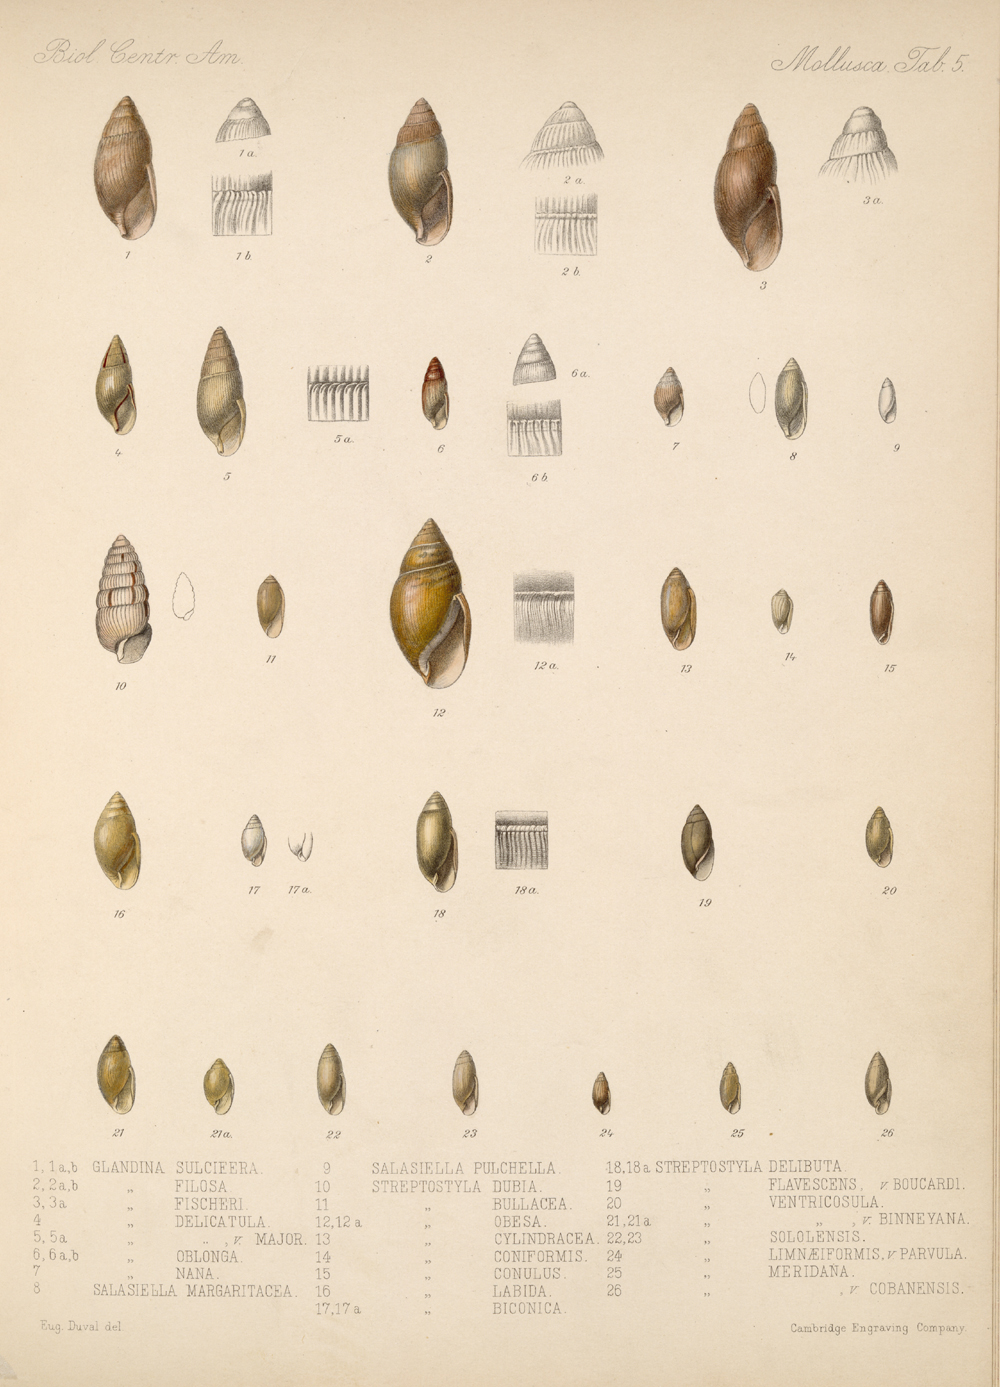 Shells and Mollusks,  Image number:bca_06_00_00_719